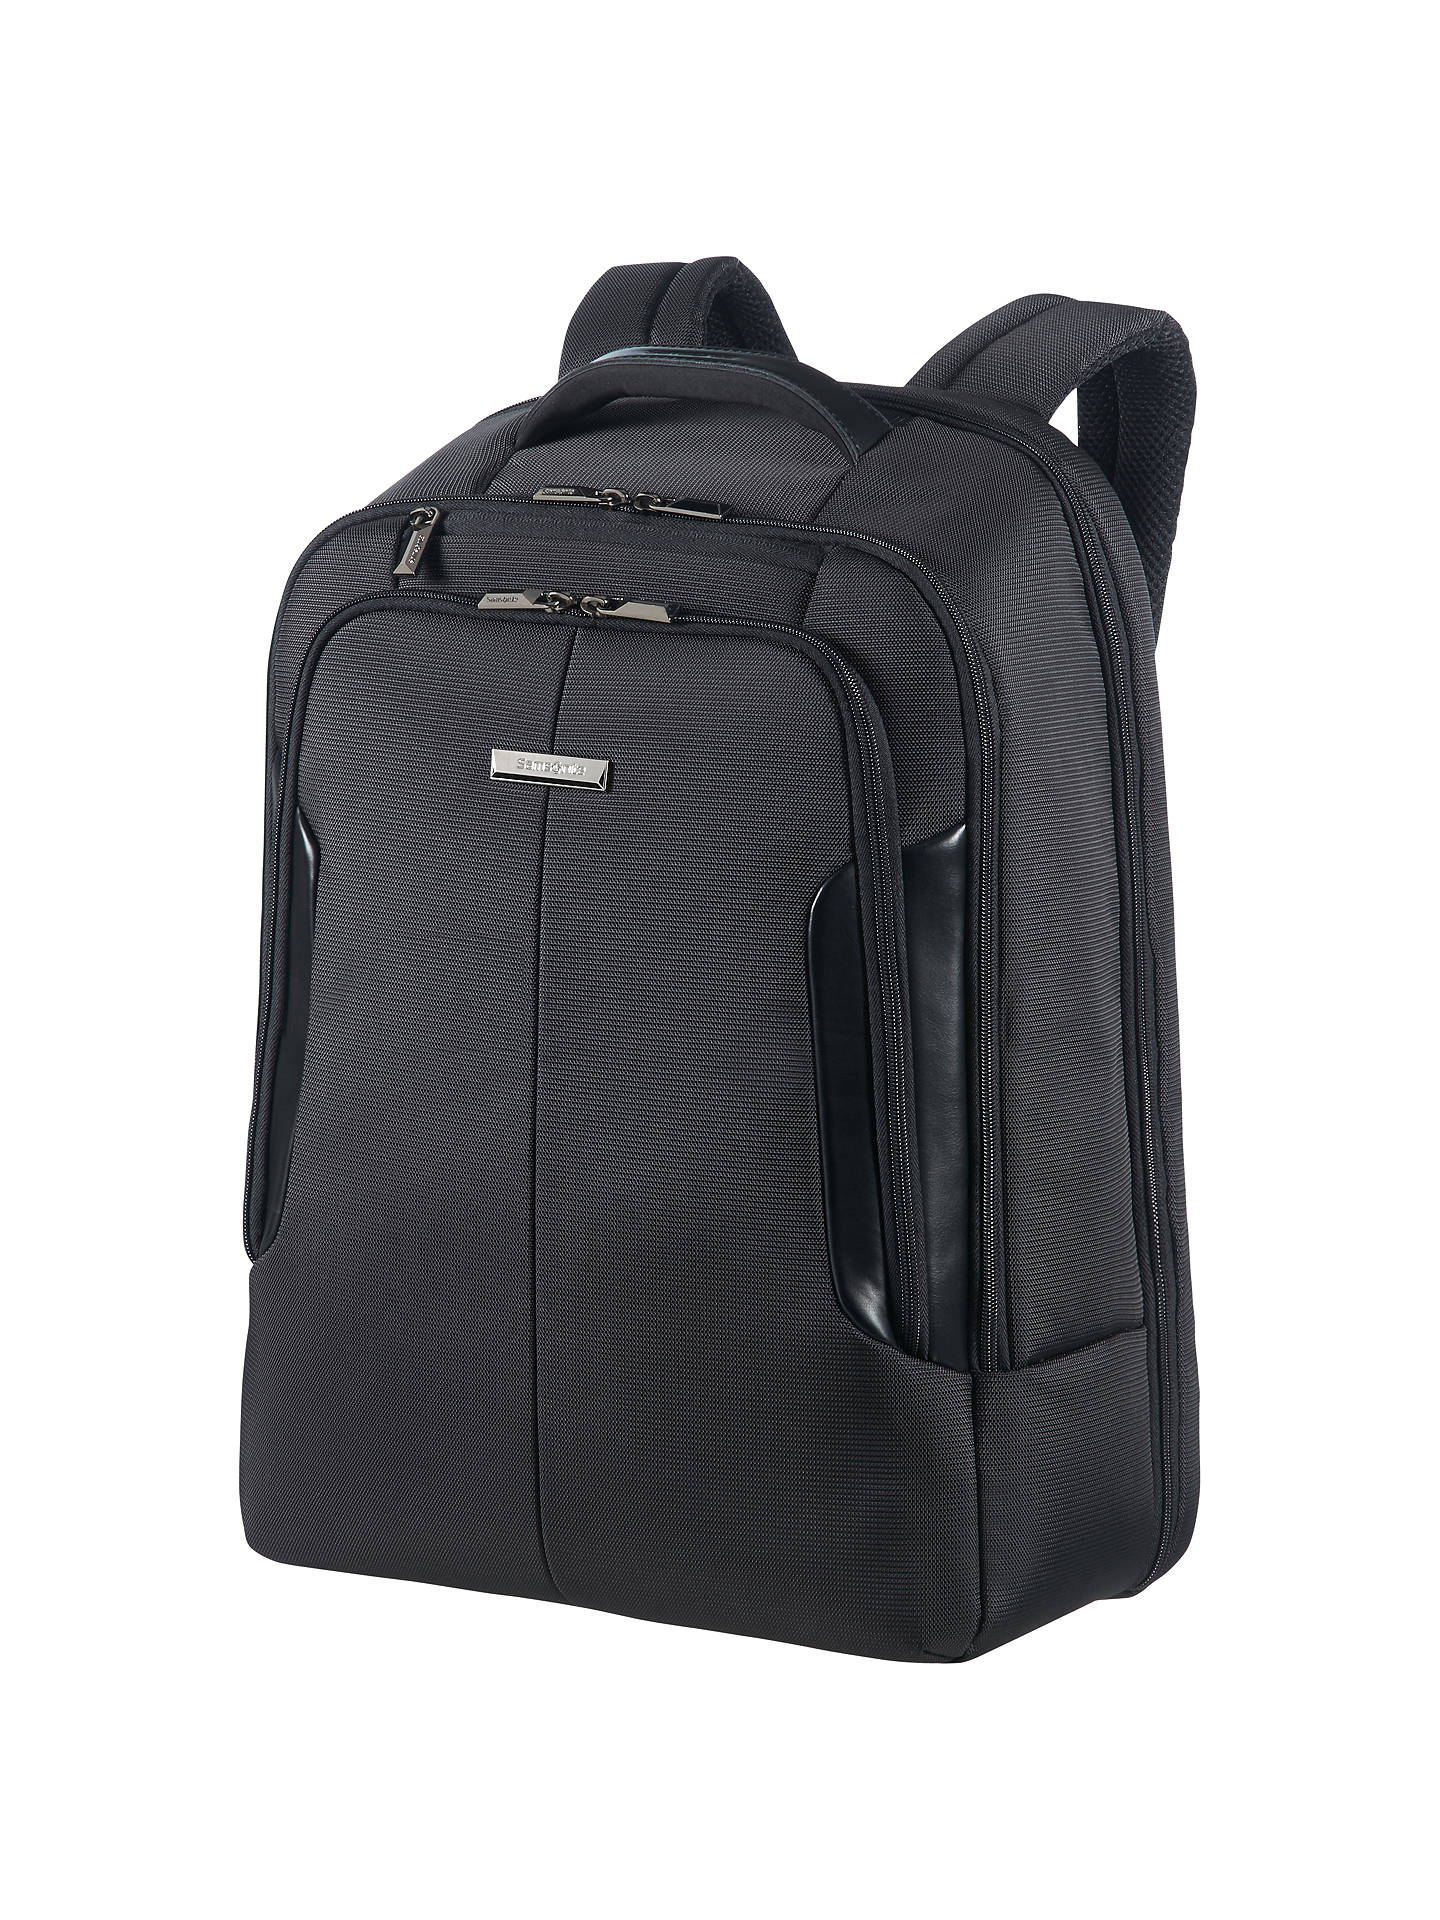 Samsonite Xbr 17 Laptop Backpack Black Online At Johnlewis